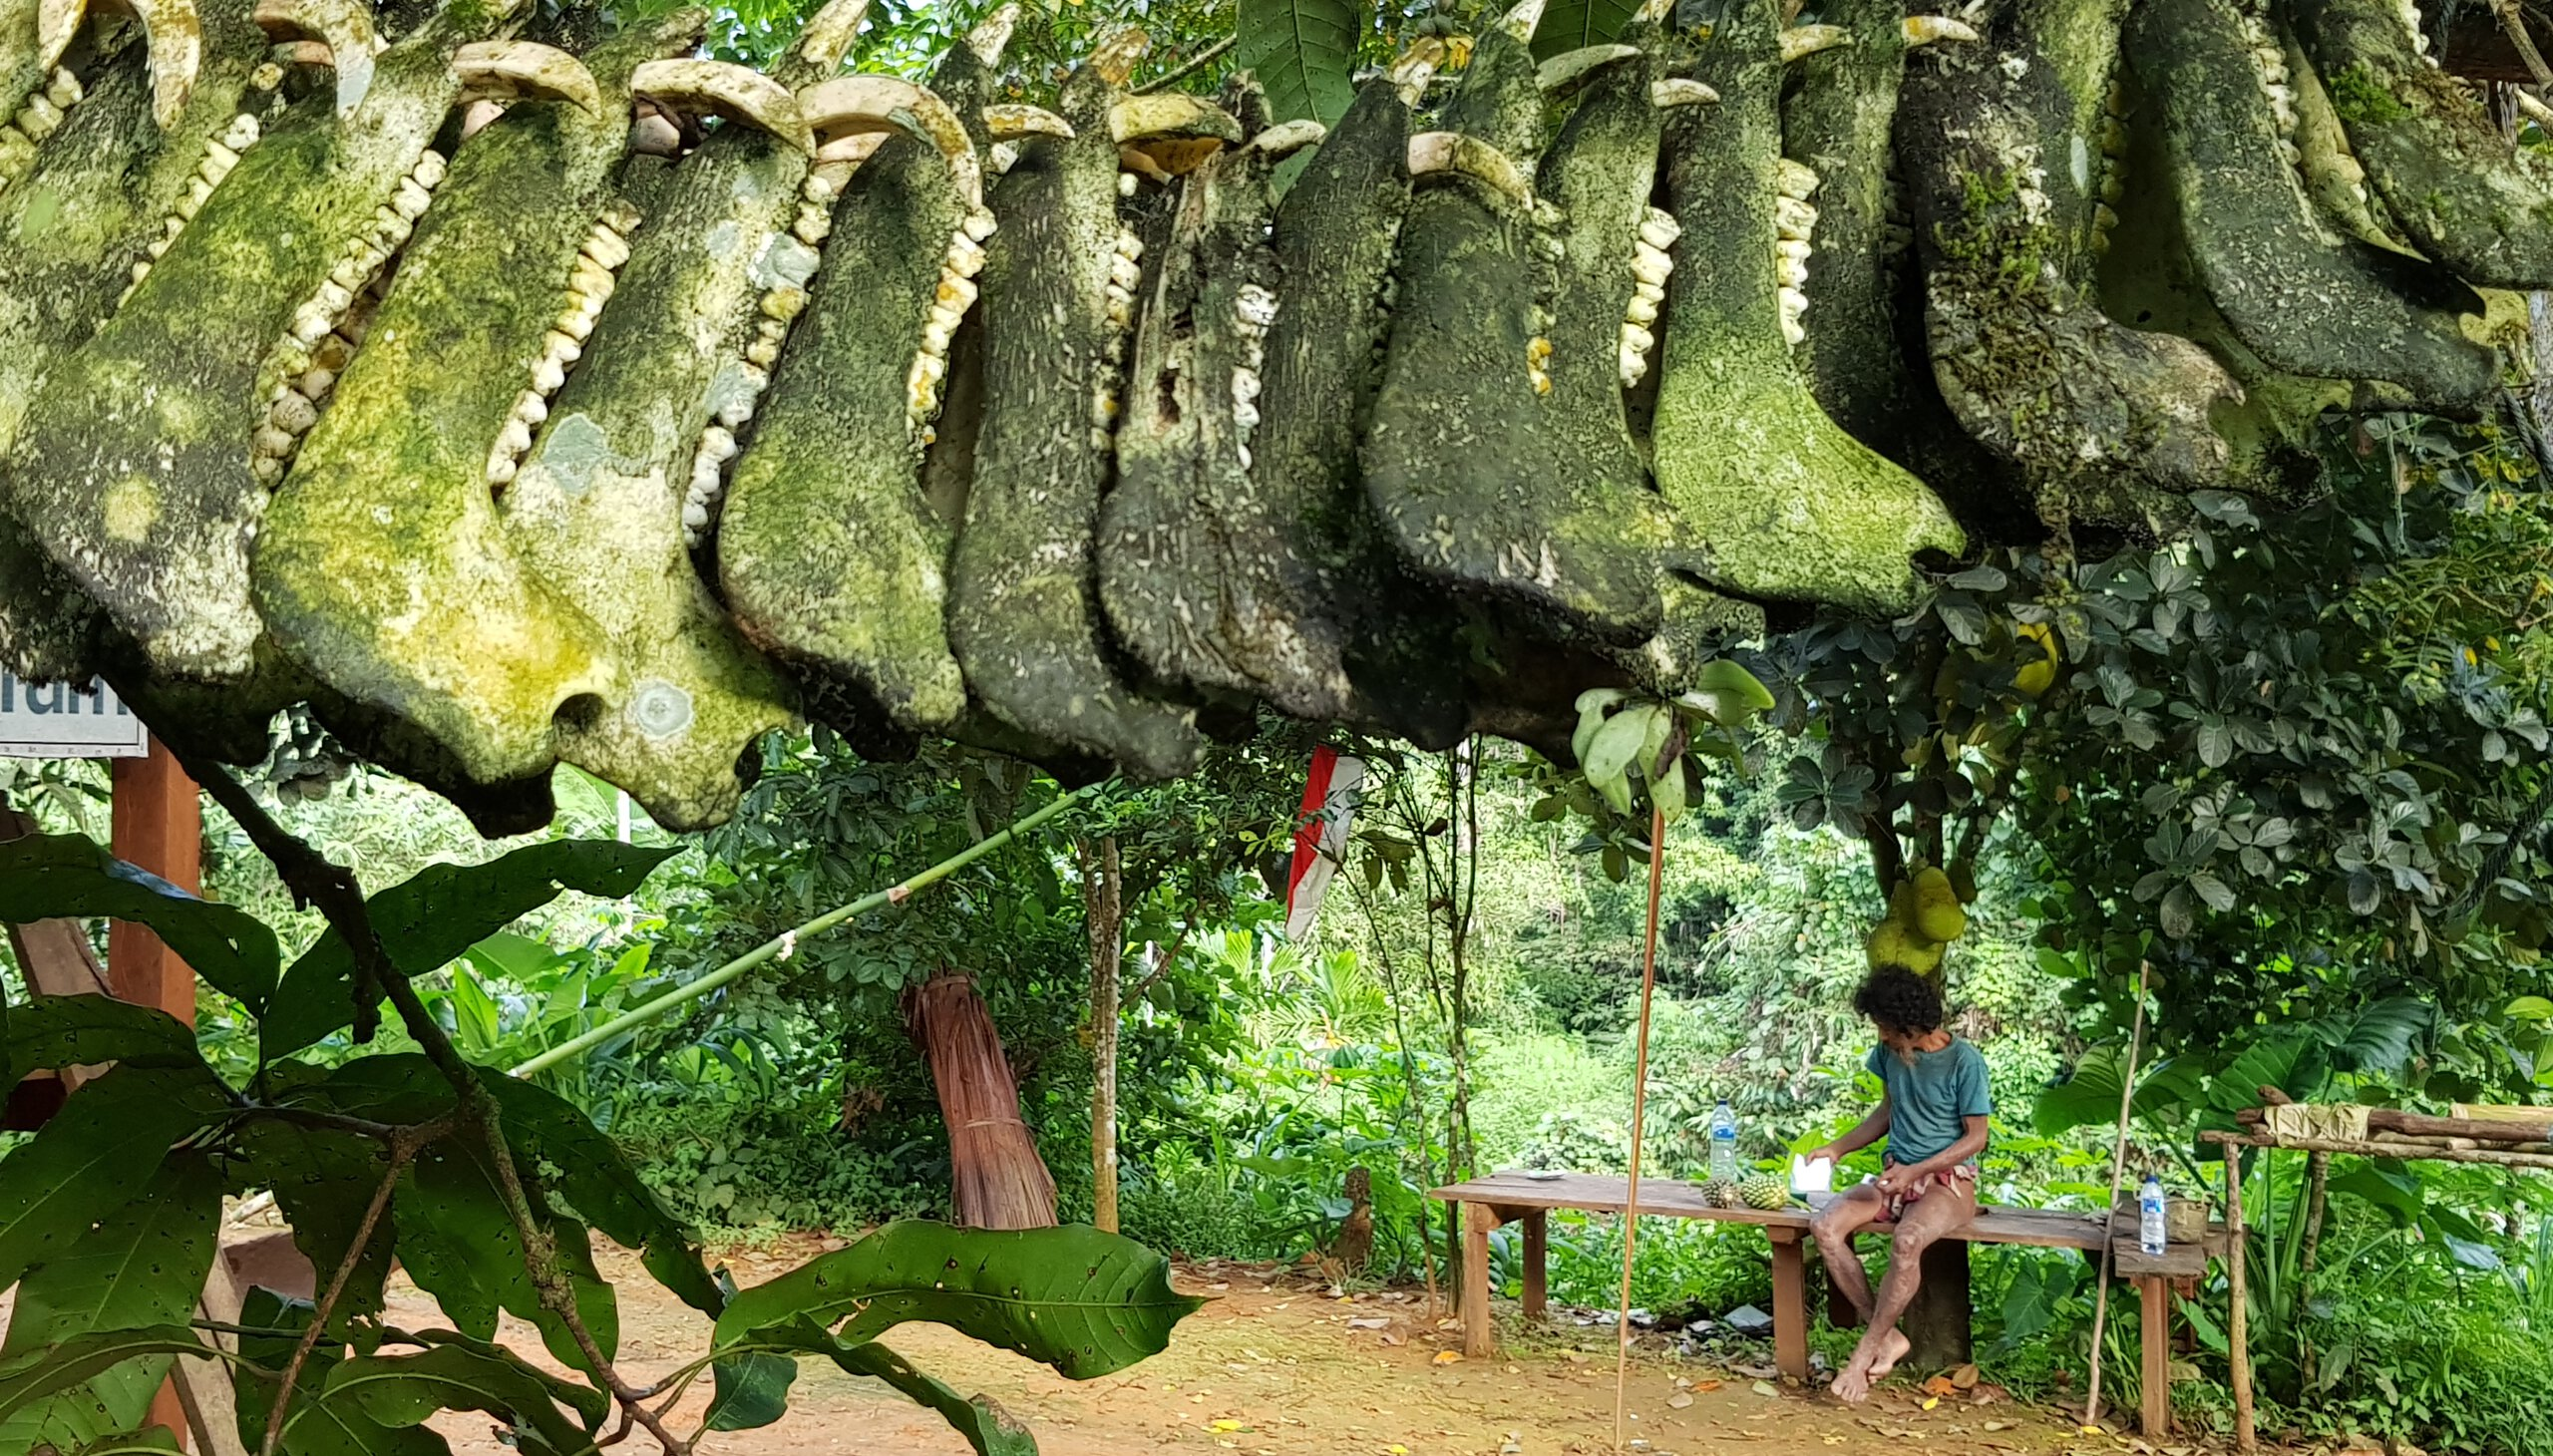 The trophy jaws of wild boars hang on a liana in front of a Togutil house in North-East Halmahera, North Maluku. Pojiji, the hunter (in the background), enjoys a relaxed afternoon.